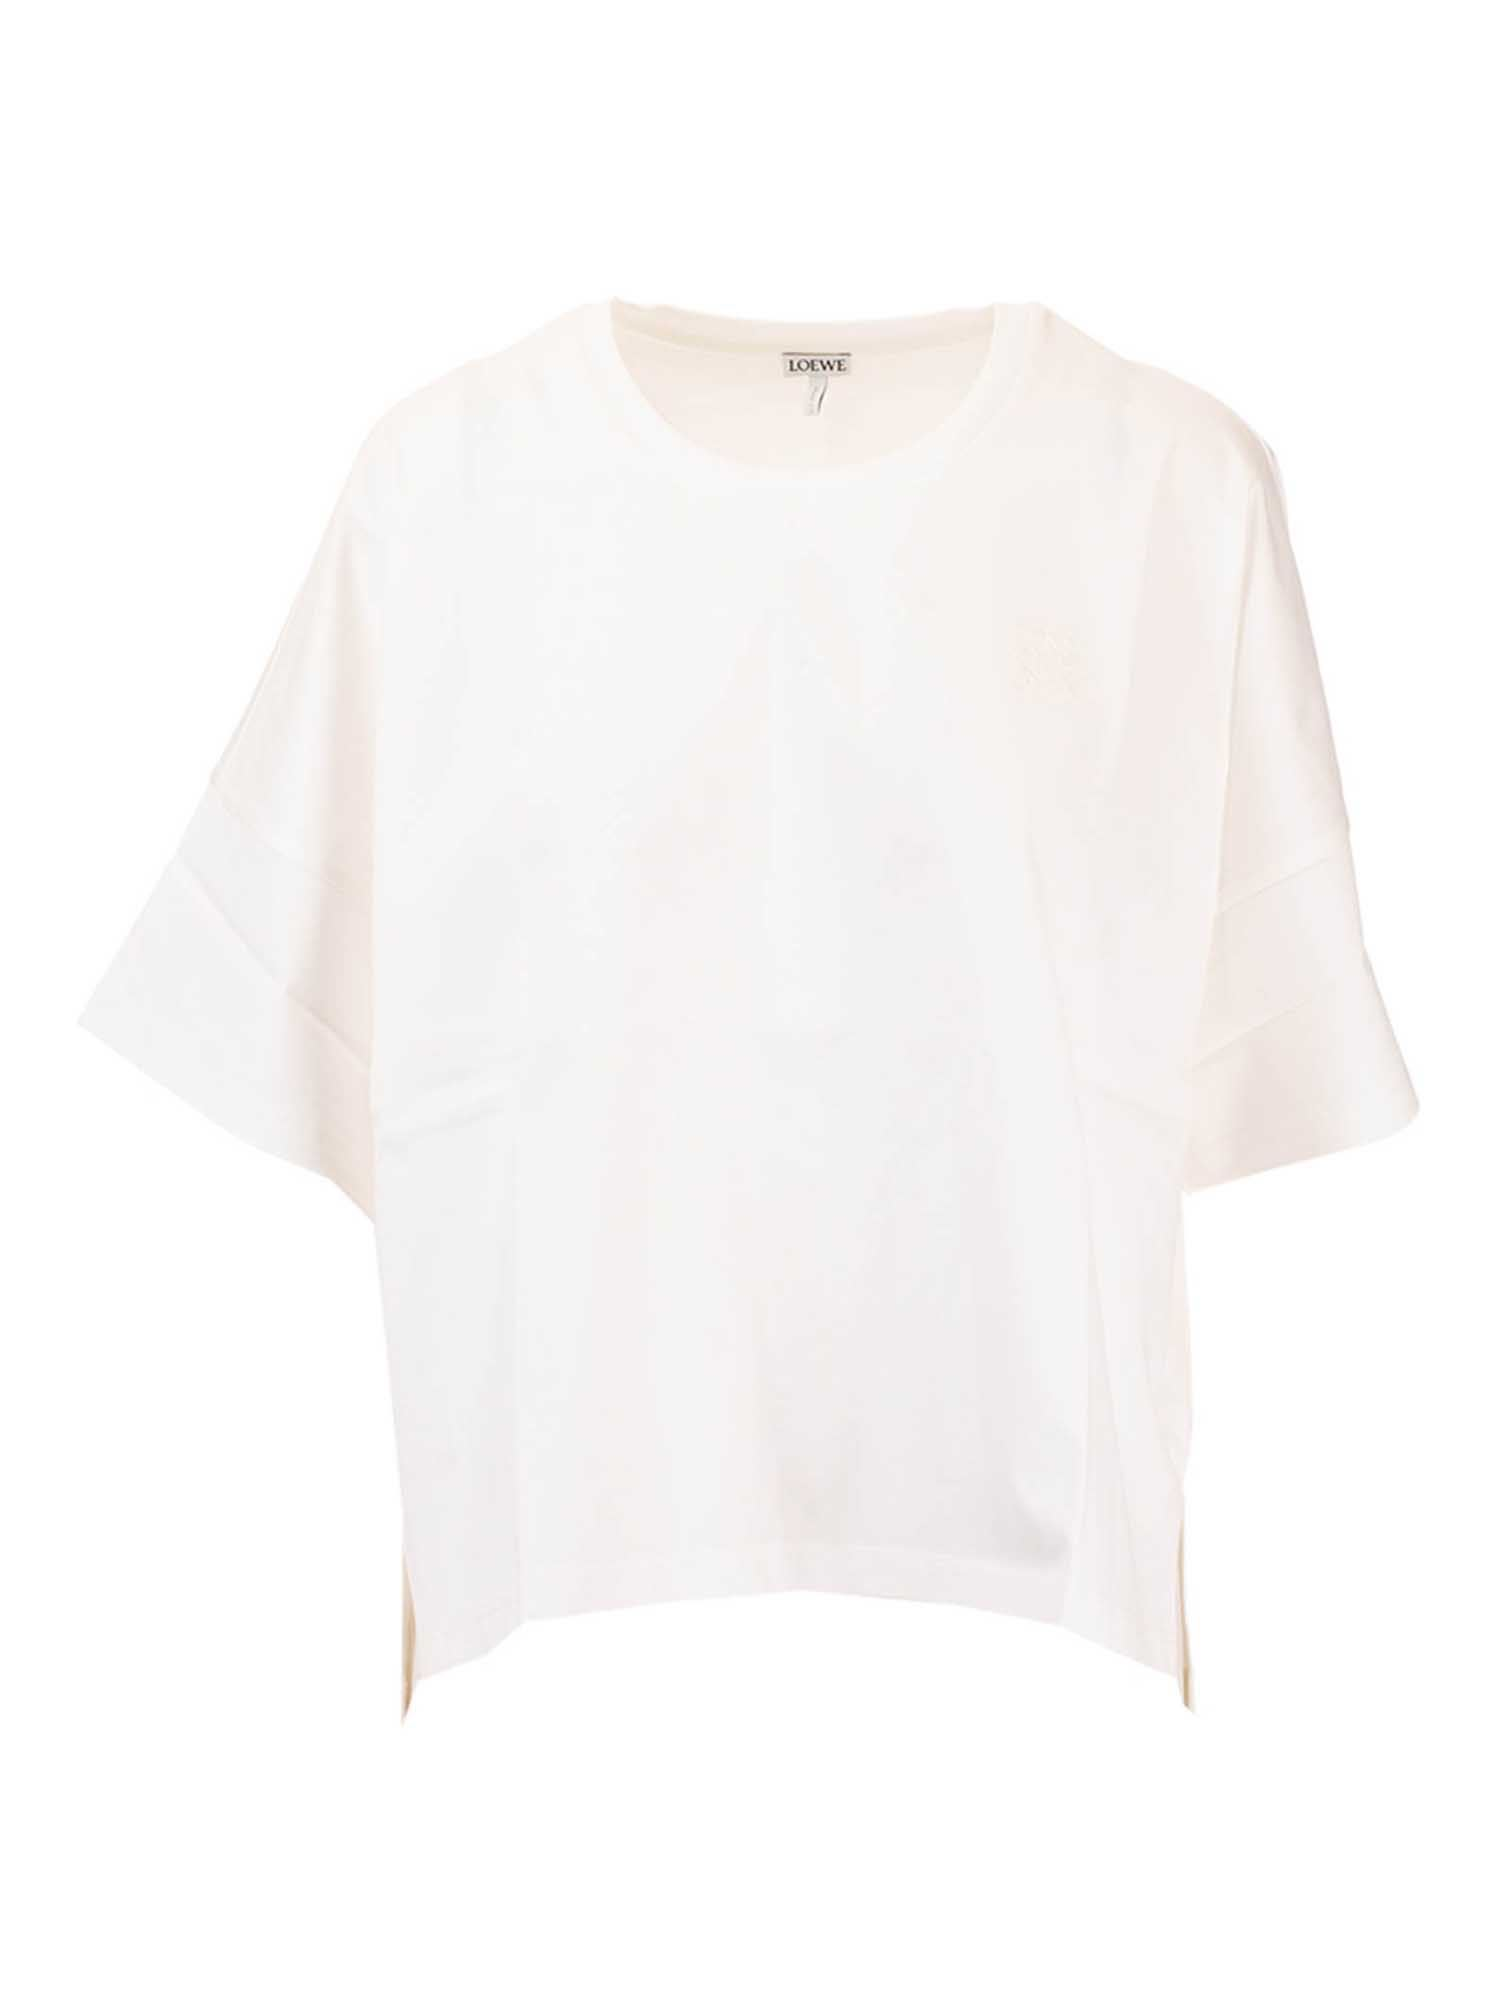 Loewe OVERSIZED T-SHIRT WITH ANAGRAM IN WHITE